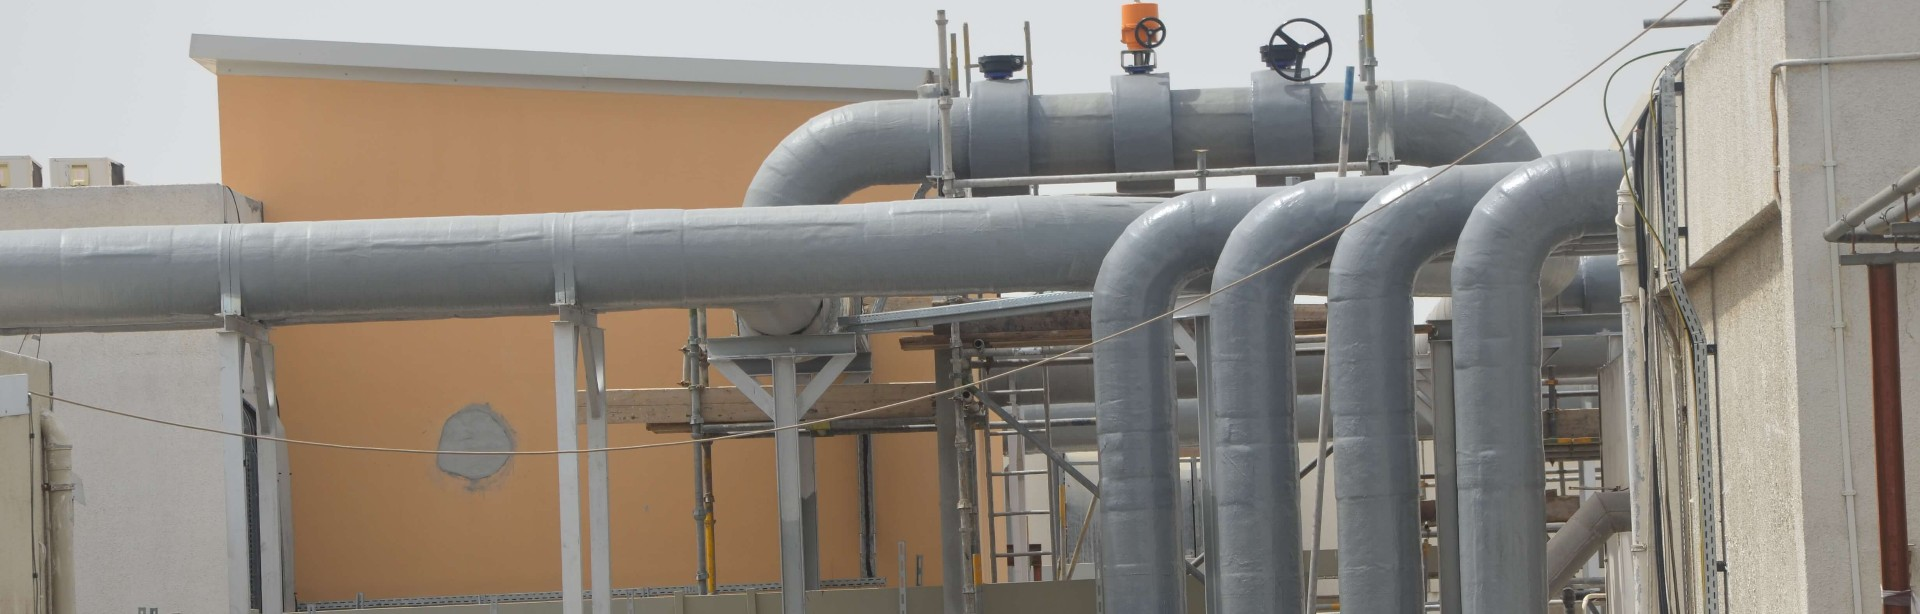 Middle East Pipes Installation Contracting (MEP) | LinkedIn